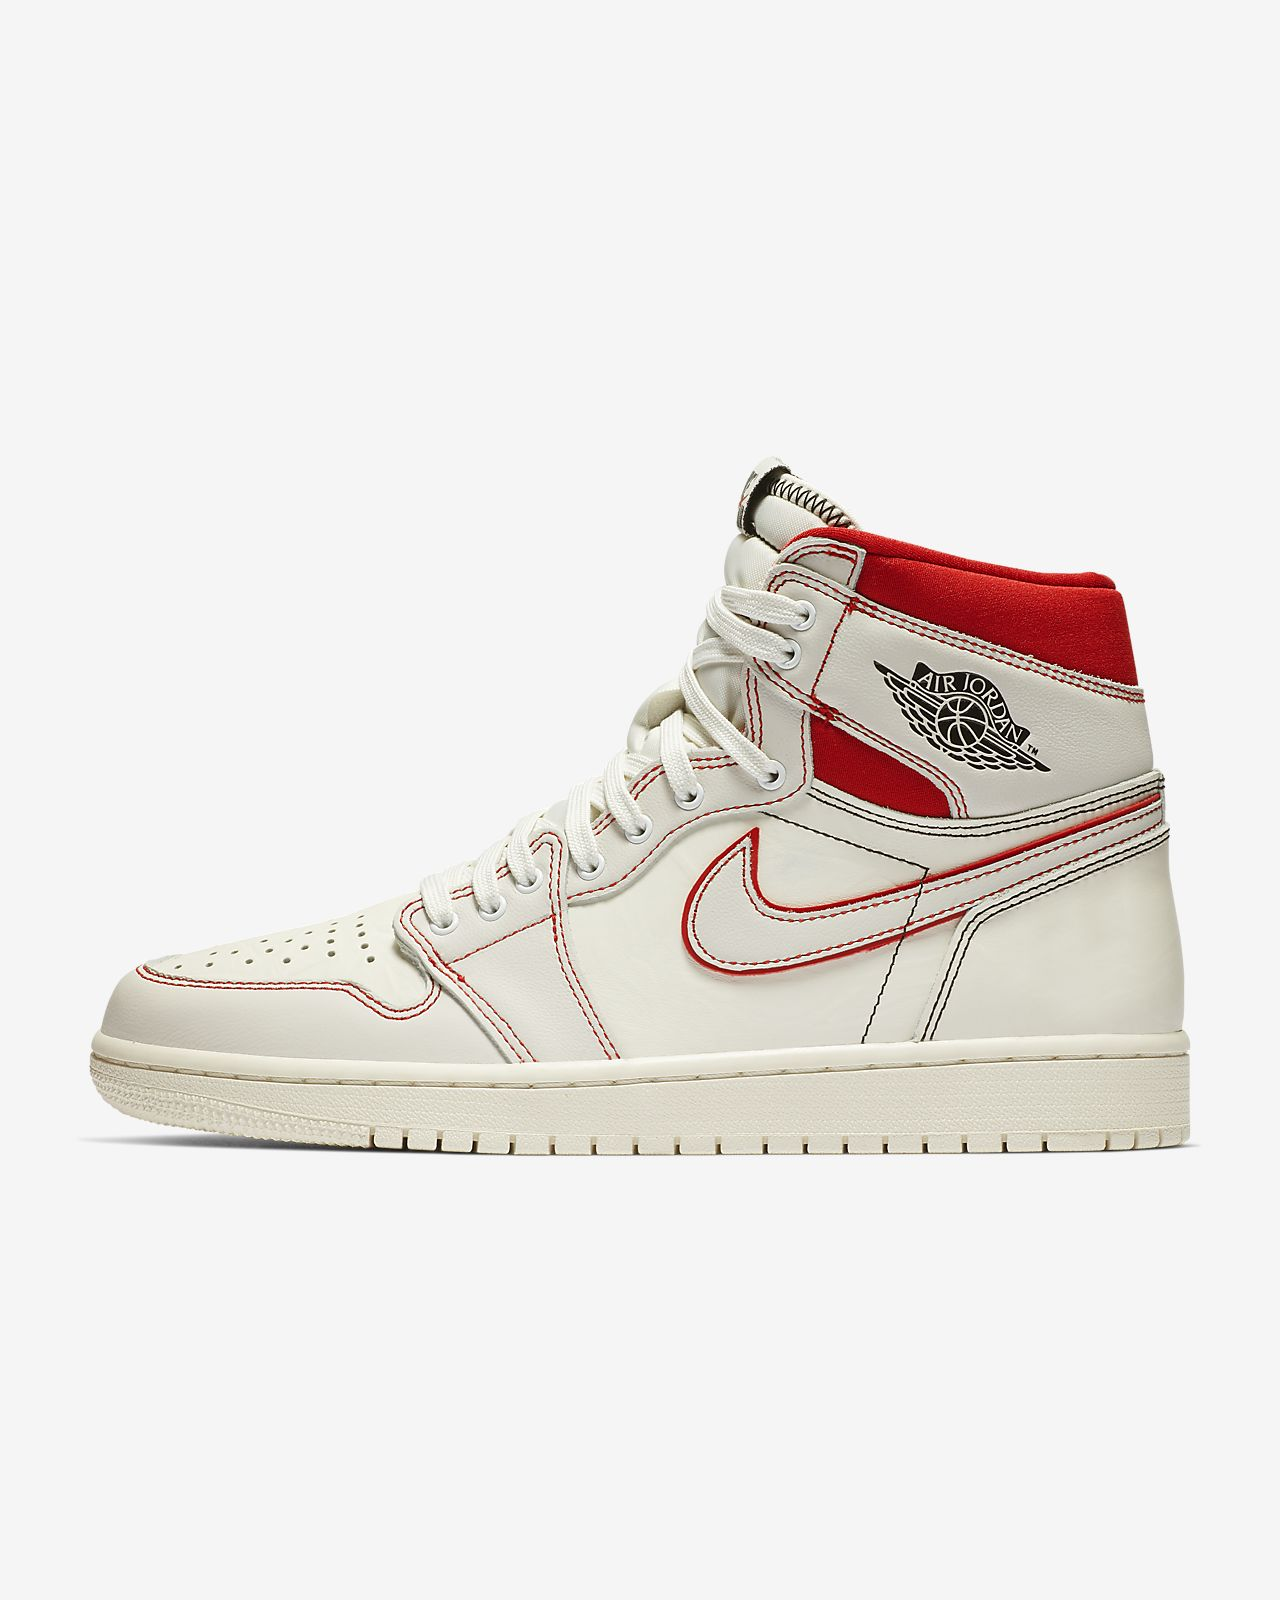 new styles 698f3 f3826 ... Air Jordan 1 Retro High OG Shoe